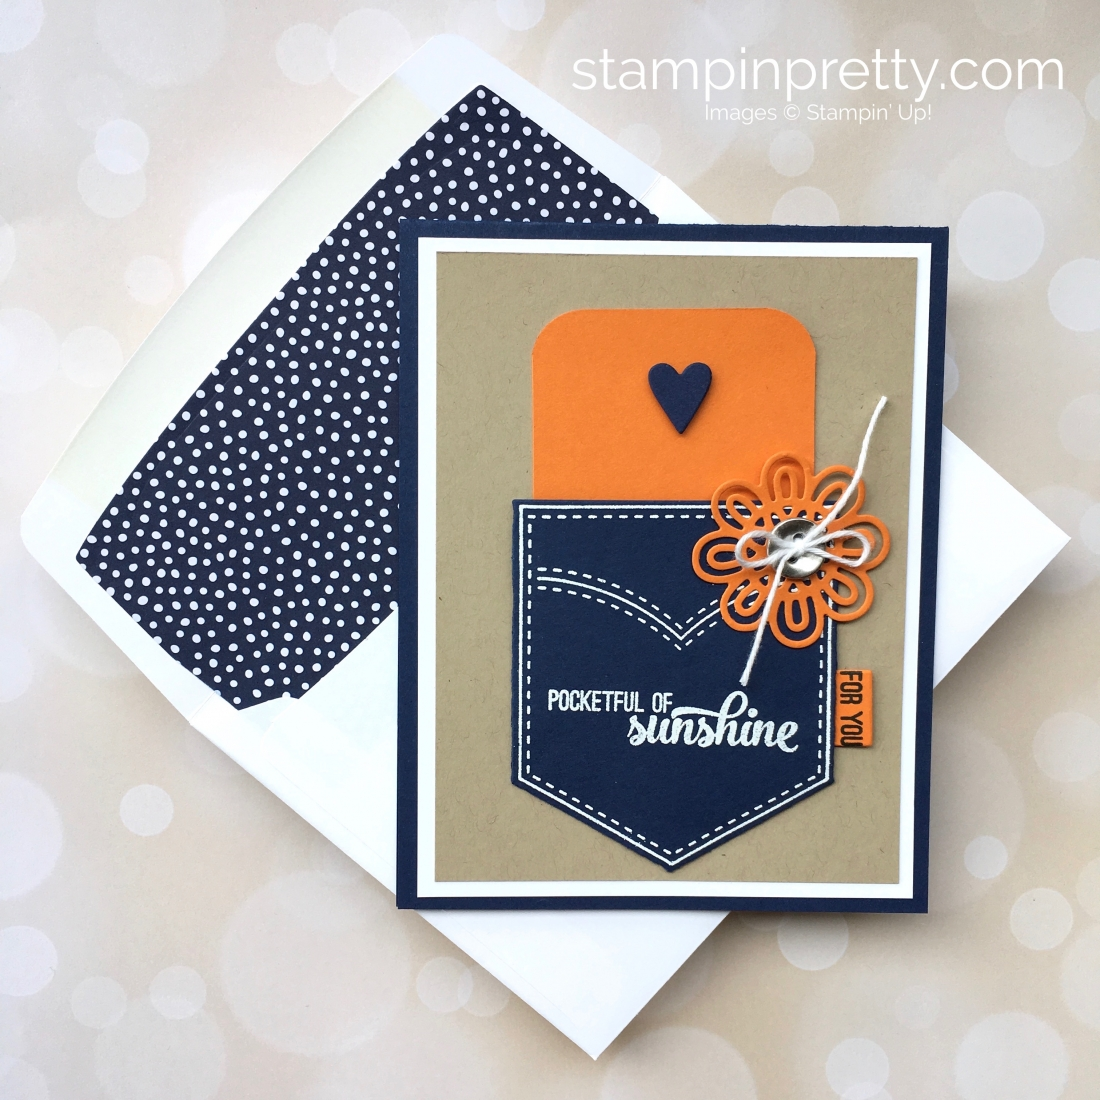 Pocket gift card for lilys birthday stampin pretty create a simple gift card holding using stampin up pocketful of sunshine pocket framelits m4hsunfo